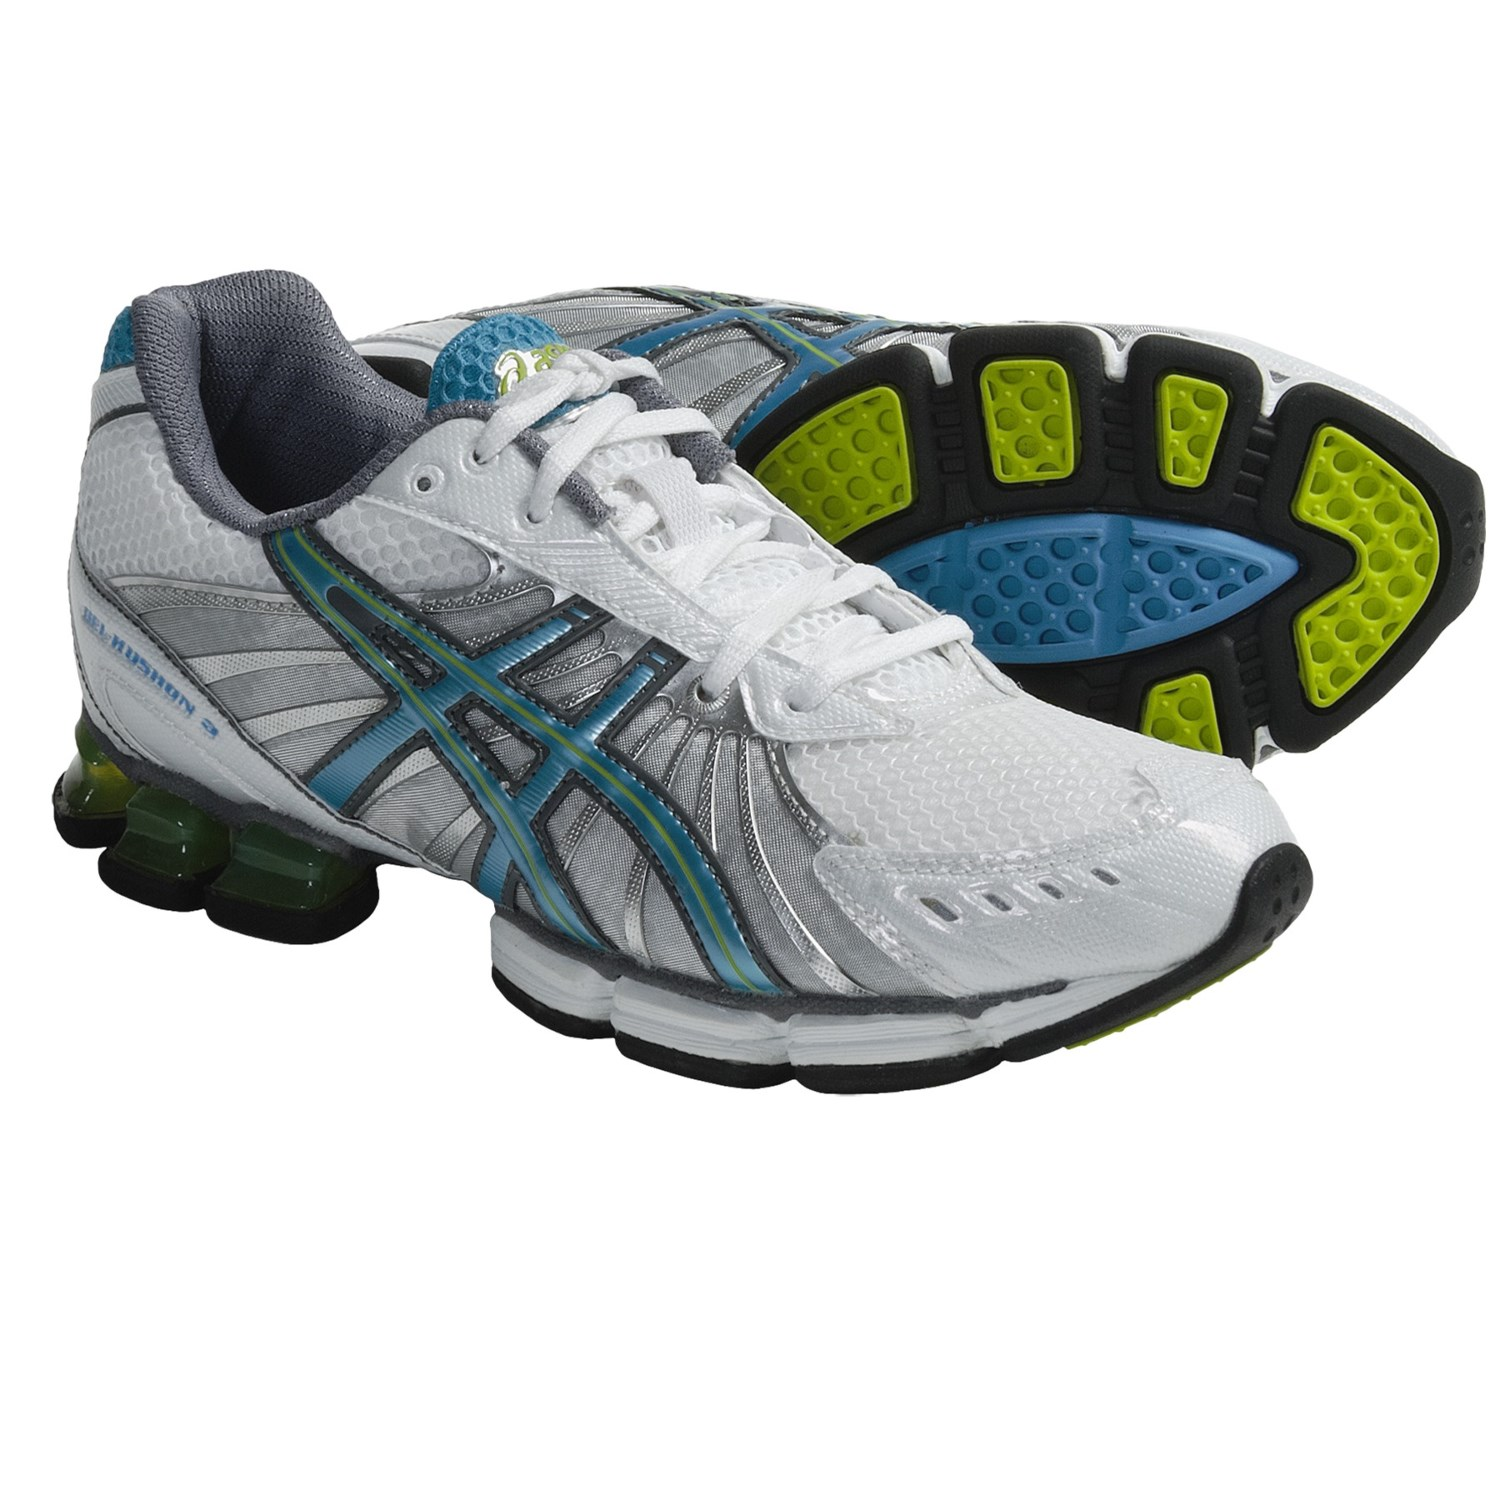 Asics GEL-Kushon 3 Running Shoes (For Women) in White/Island Blue/Lime